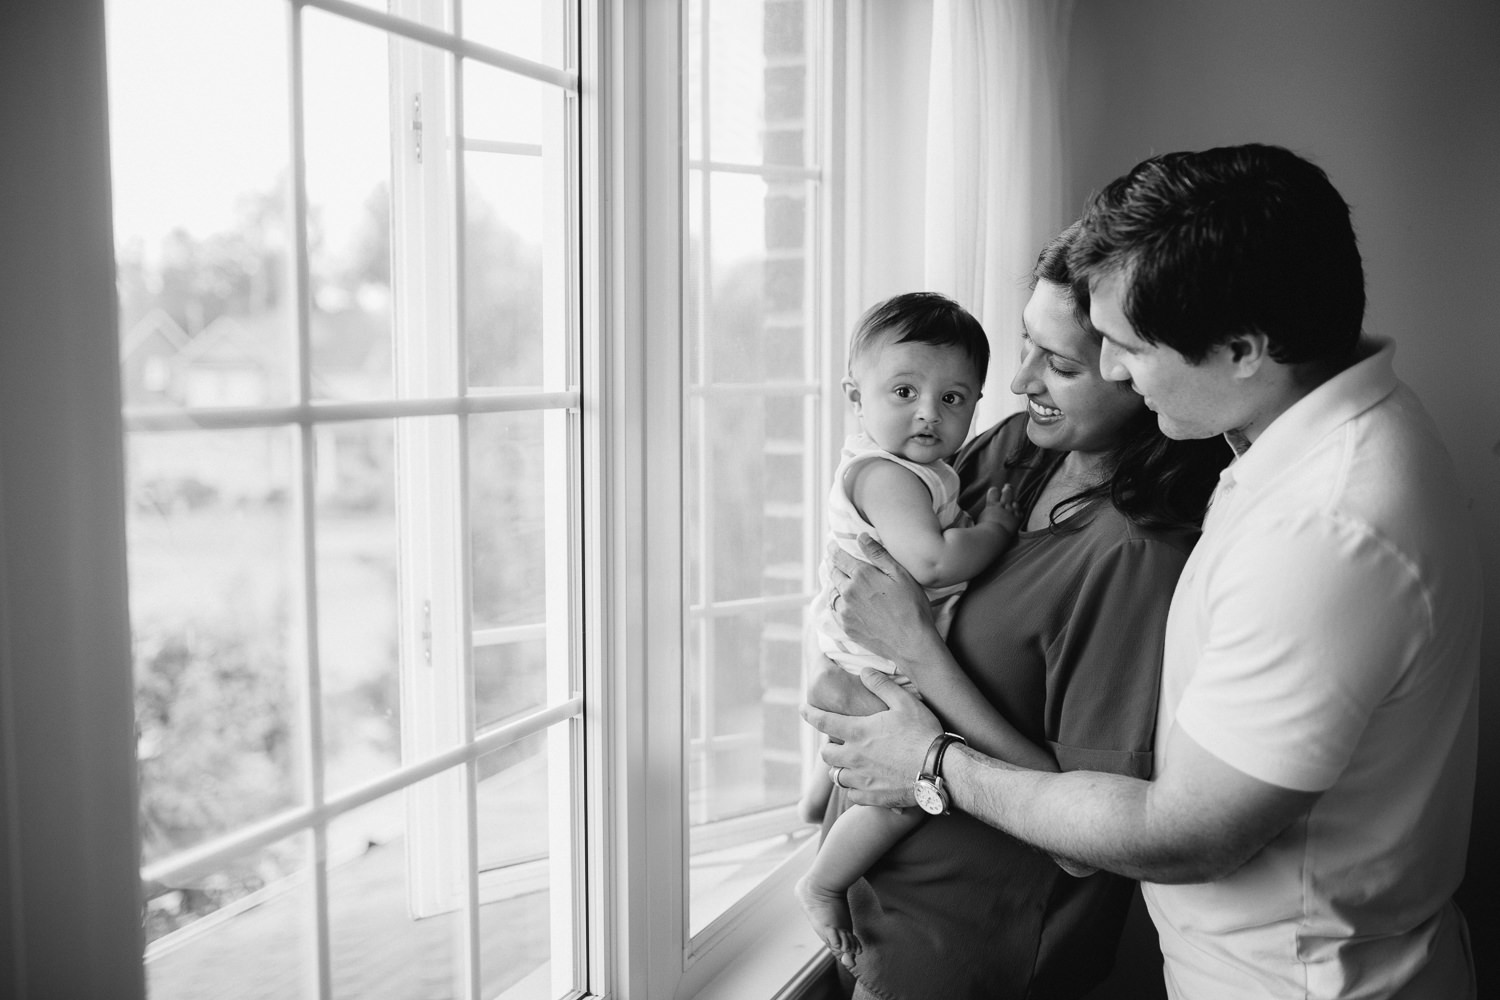 family of 3 standing at window, mom holding 8 month old baby boy - Barrie Lifestyle Photos